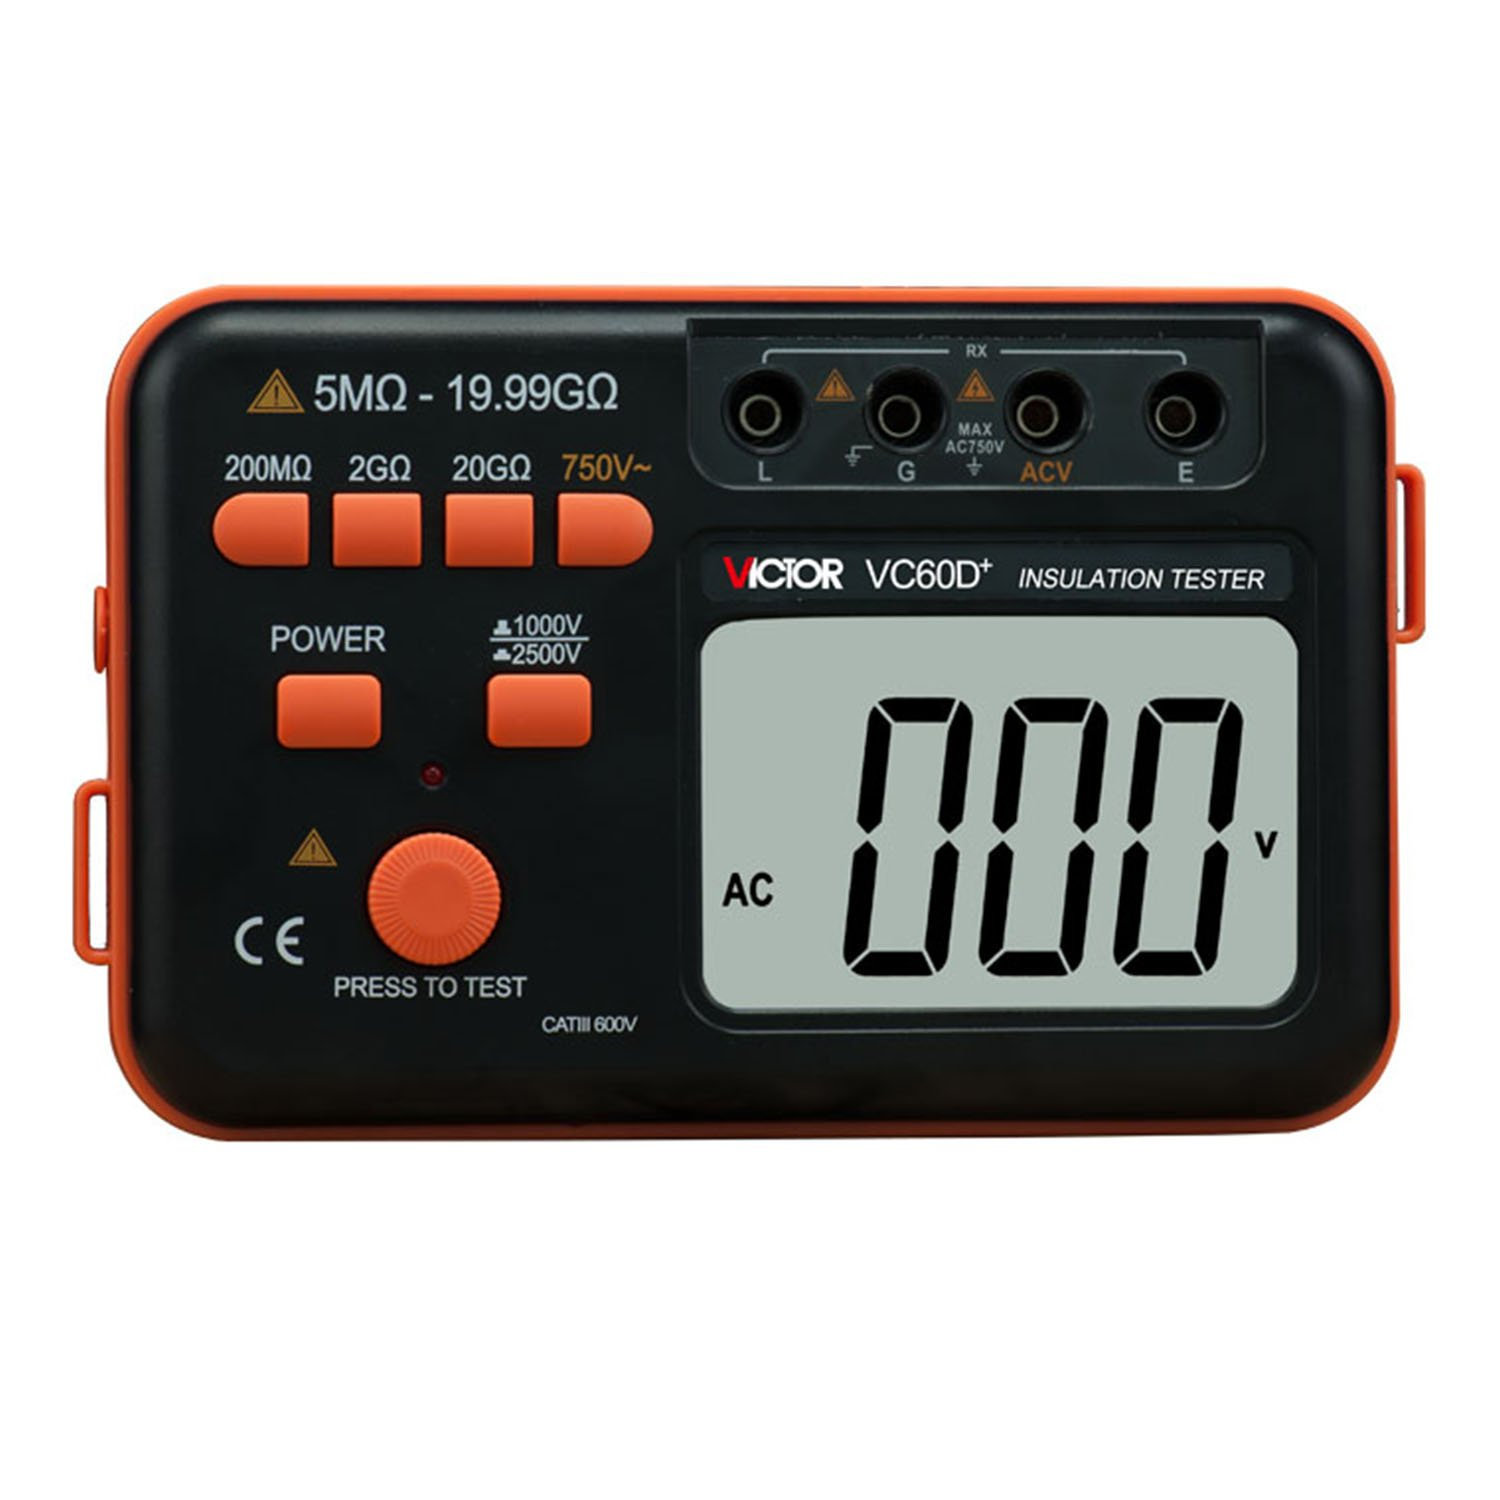 VICTOR VC60D+ Digital Insulation Tester Resistance Meter 2500V Voltage Test